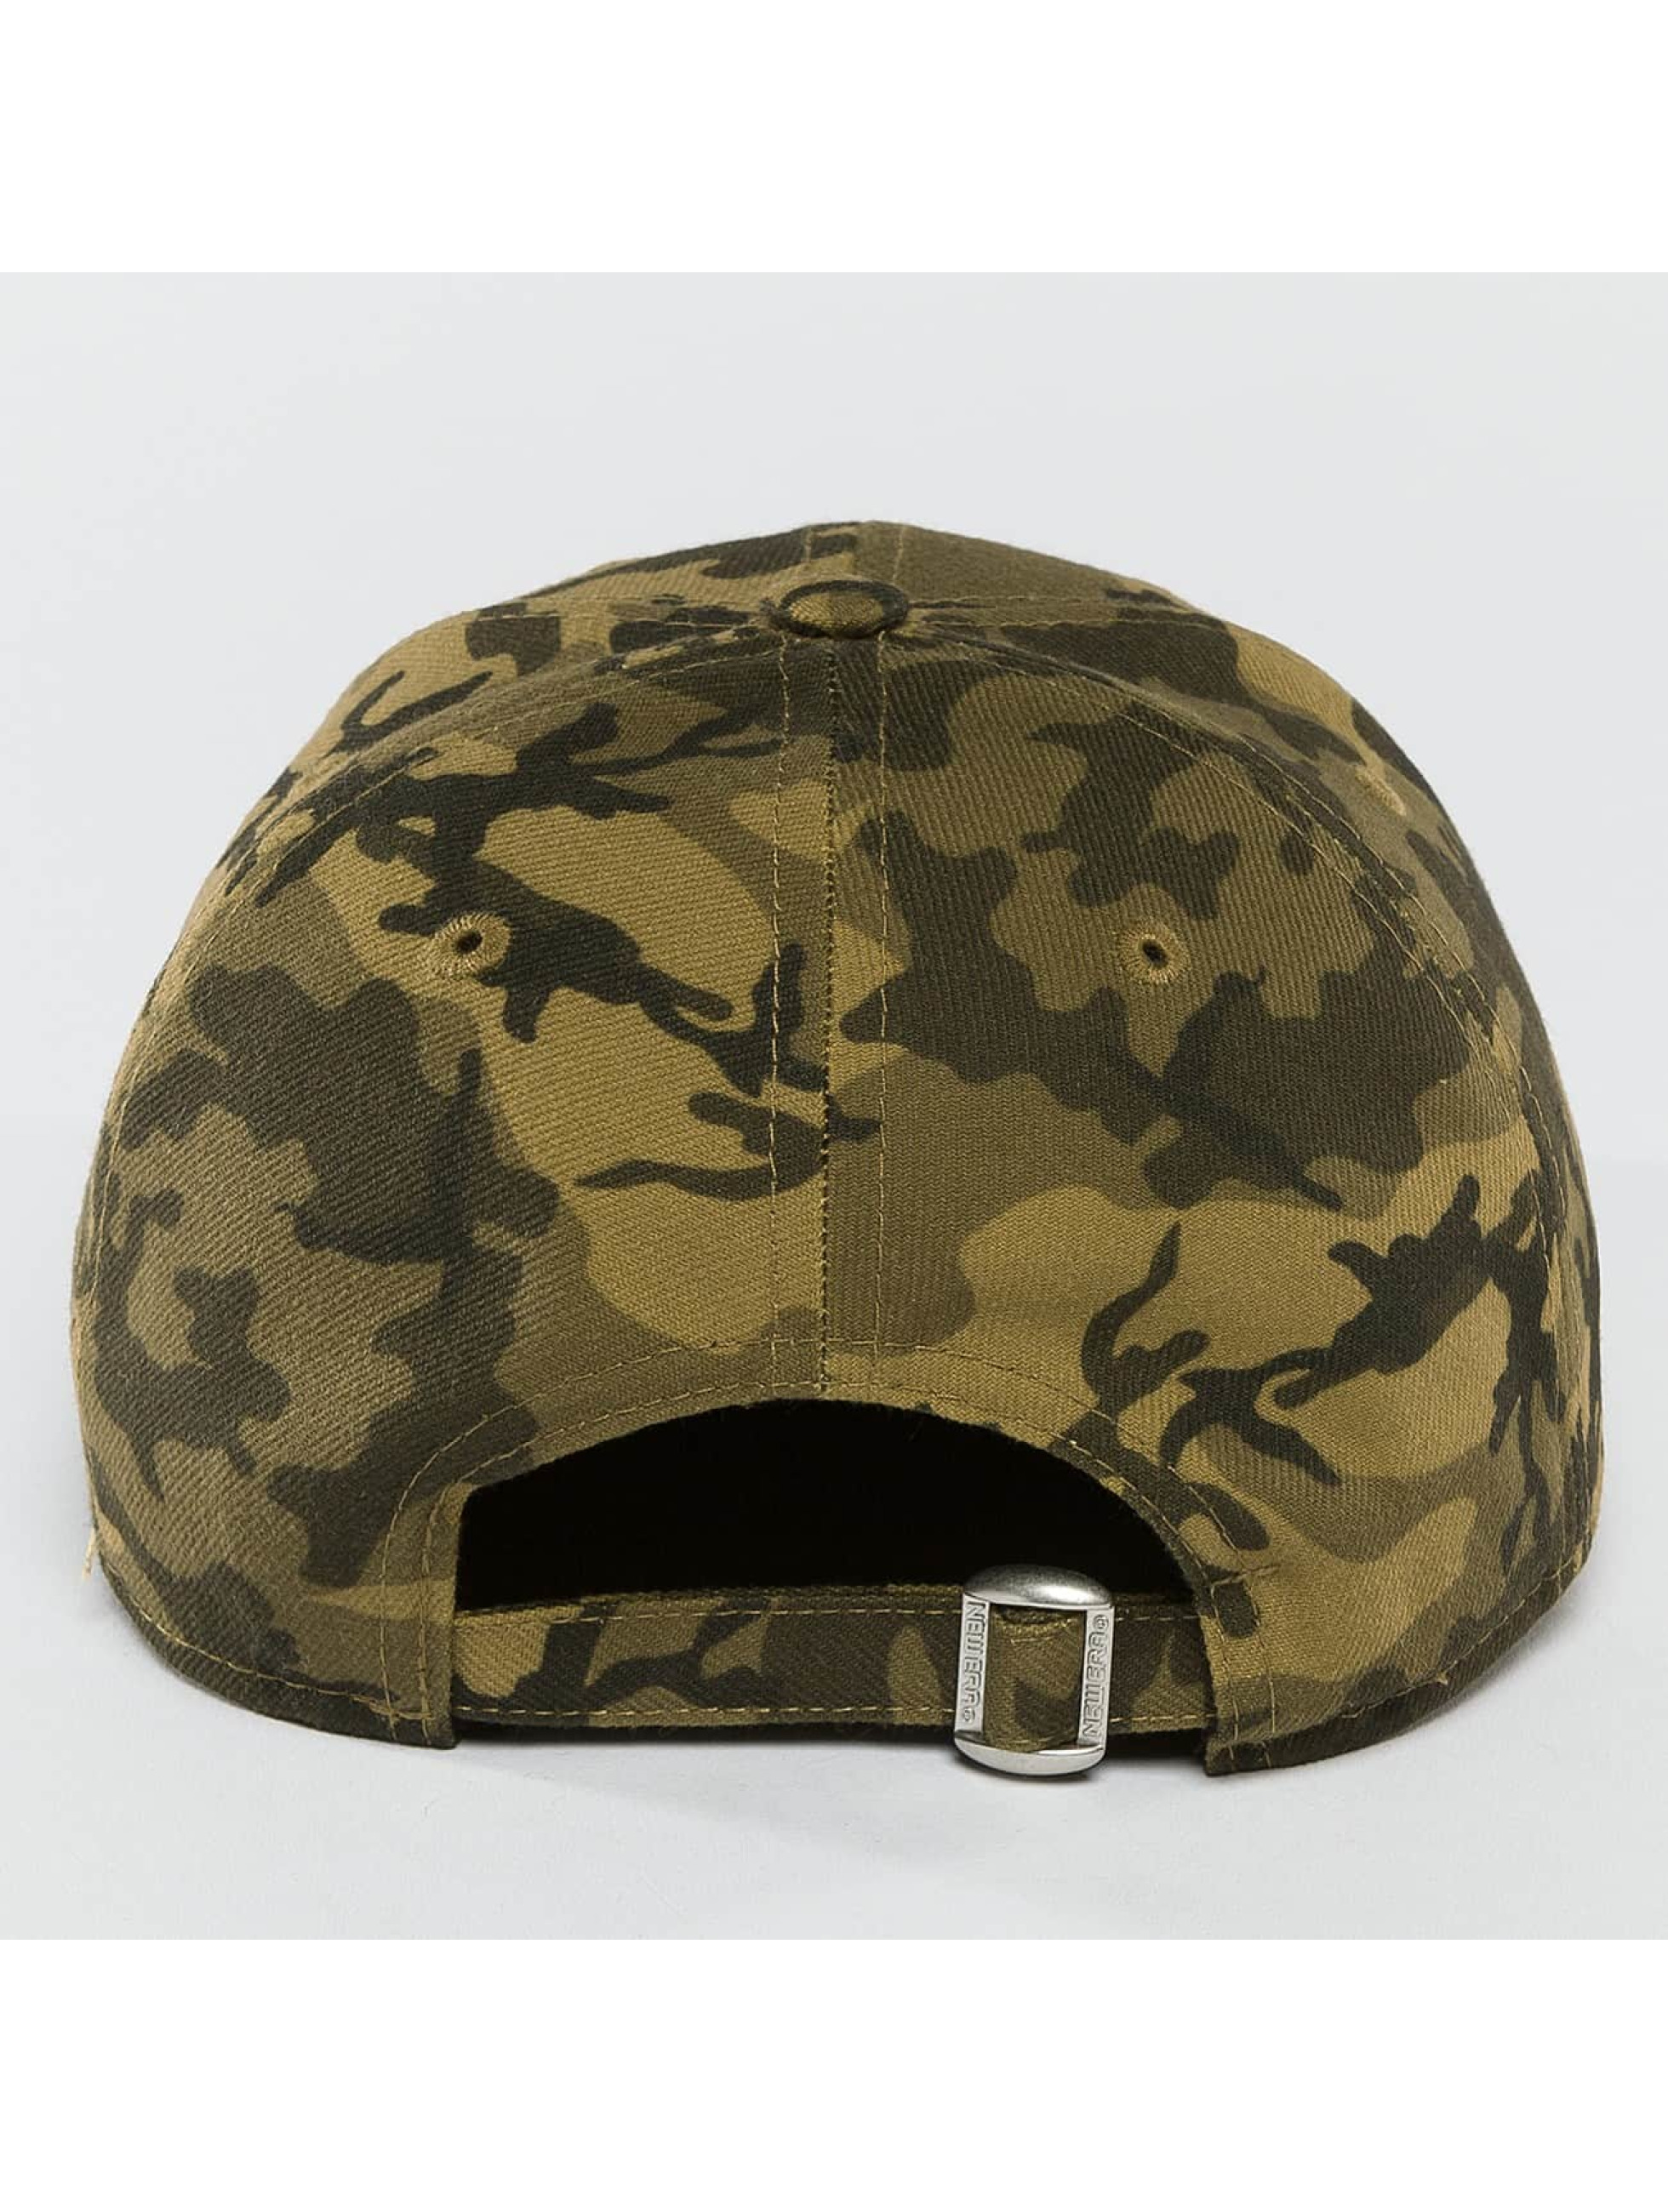 New Era Snapback Cap Seasonal Camo Atlanta Braves9Forty camouflage